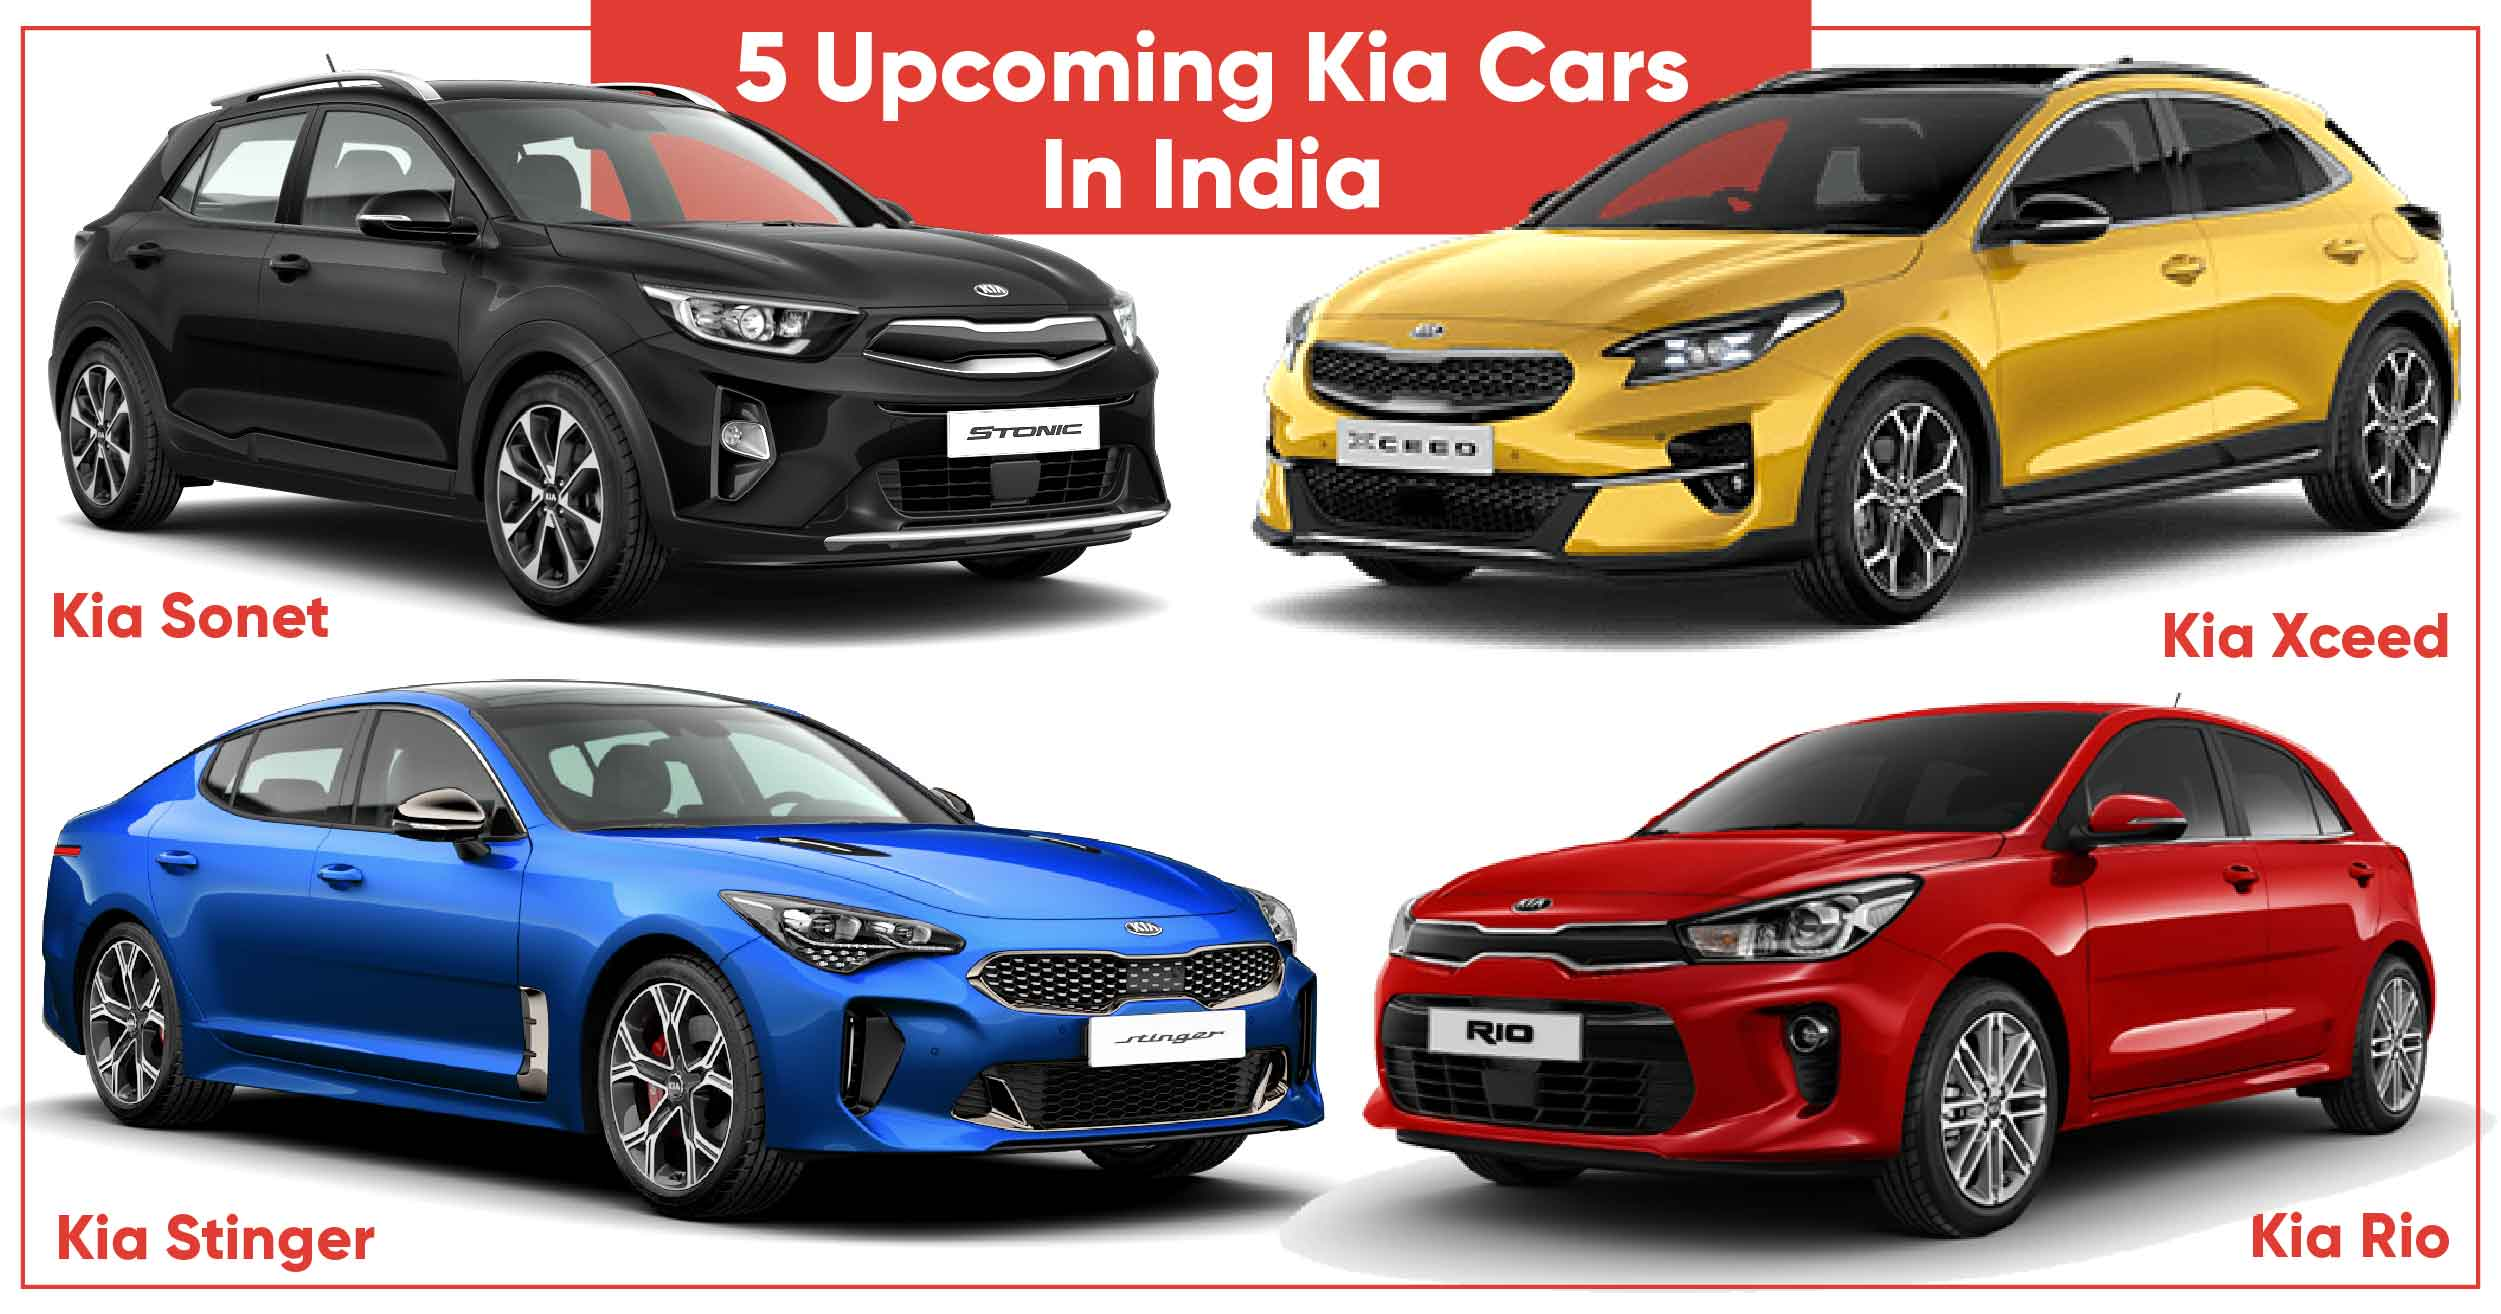 5 Upcoming Kia Cars In India Tough Competition Ahead